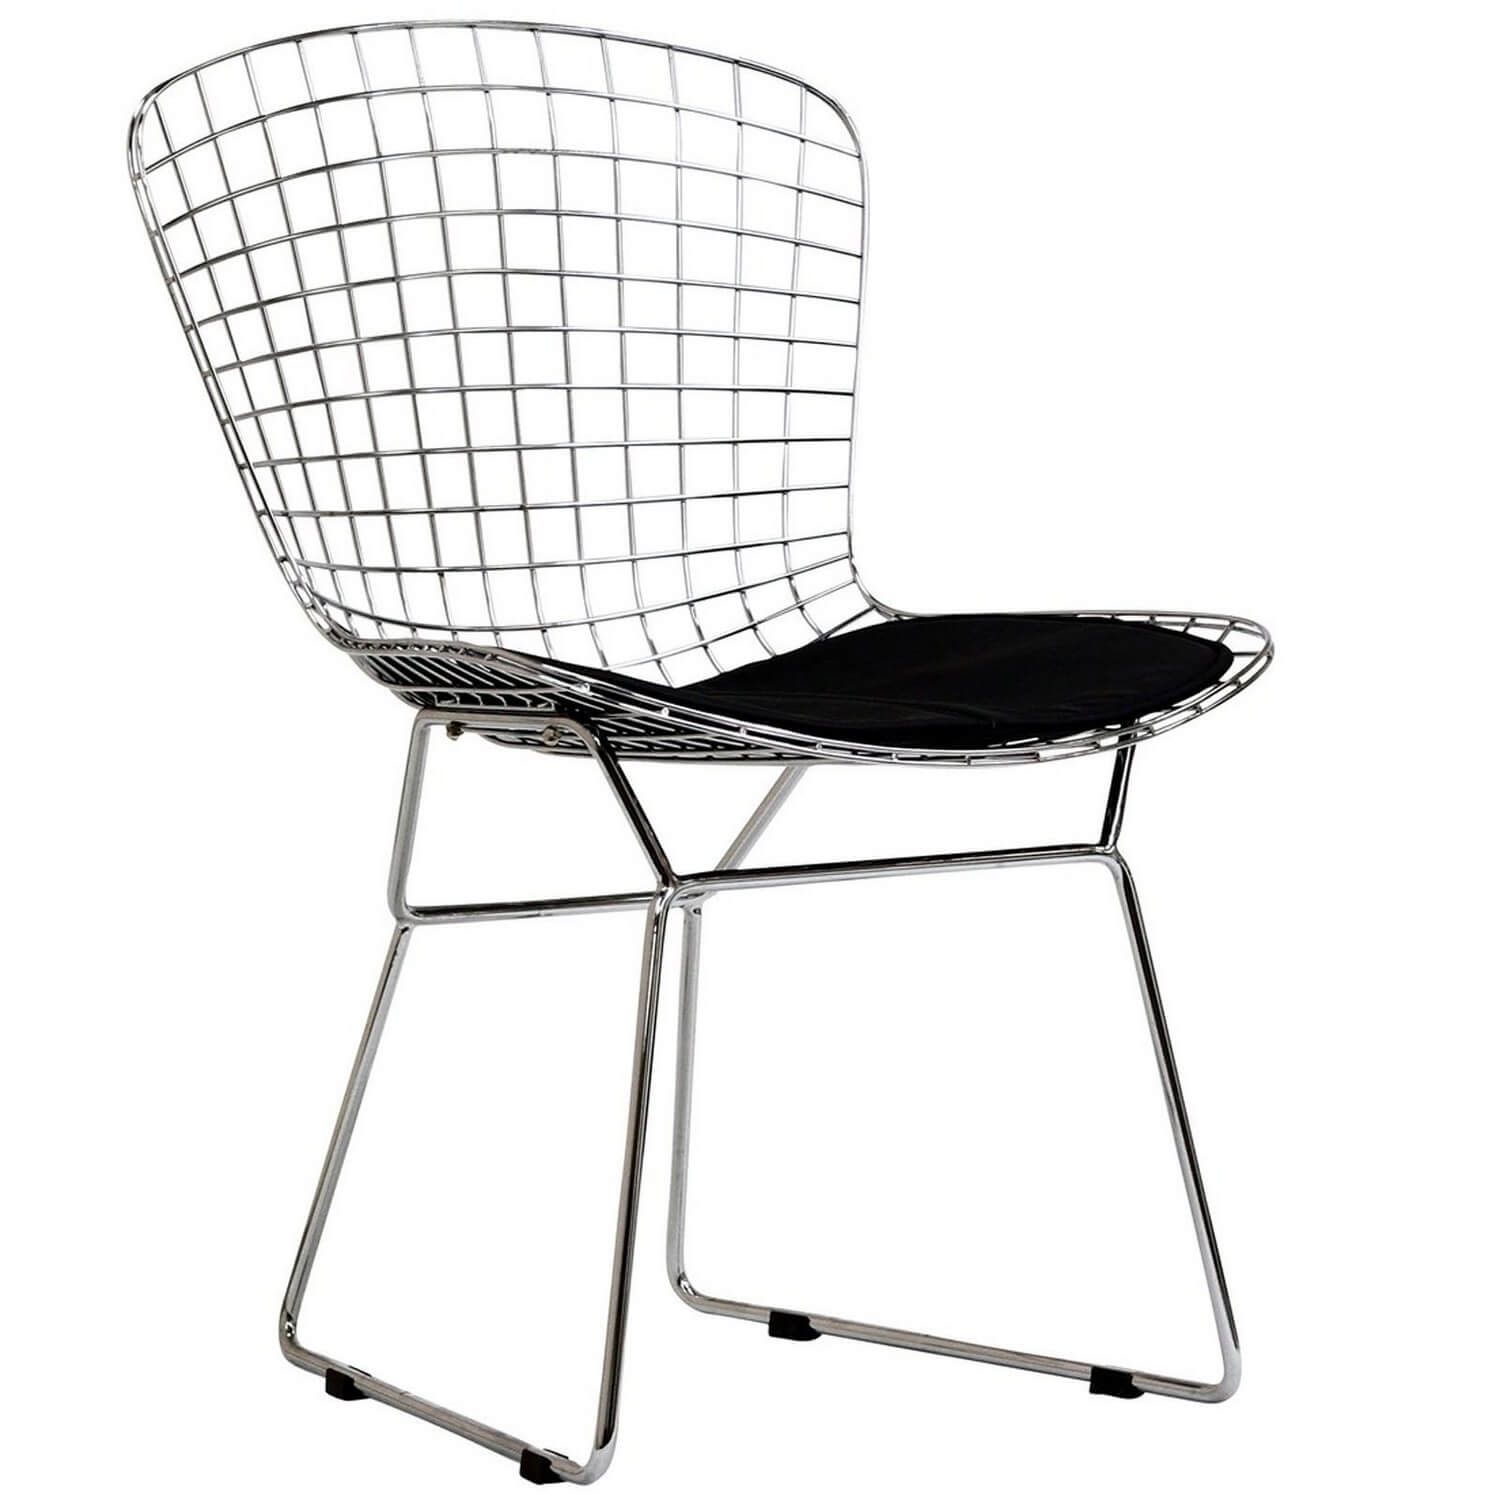 Restaurant chairs CUB EEI 161 BLK MOD